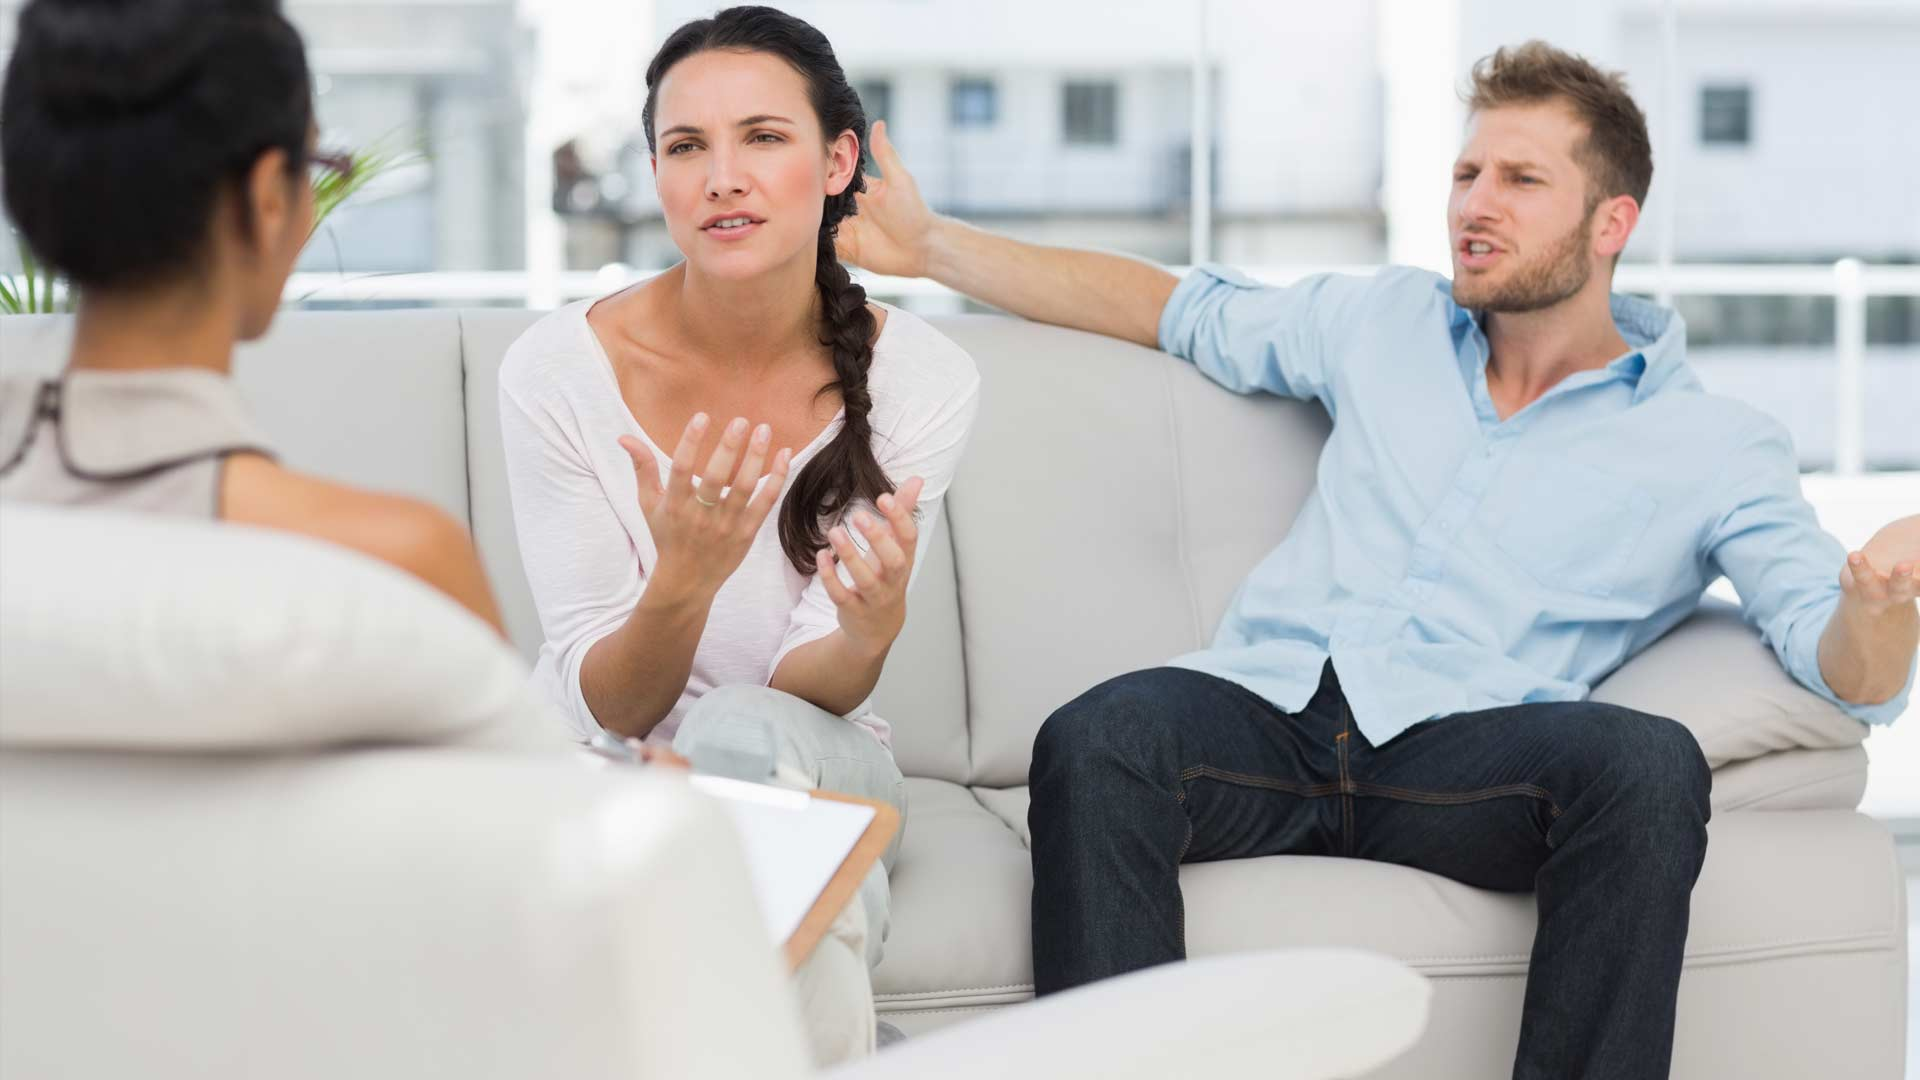 Newcastle family counselling service